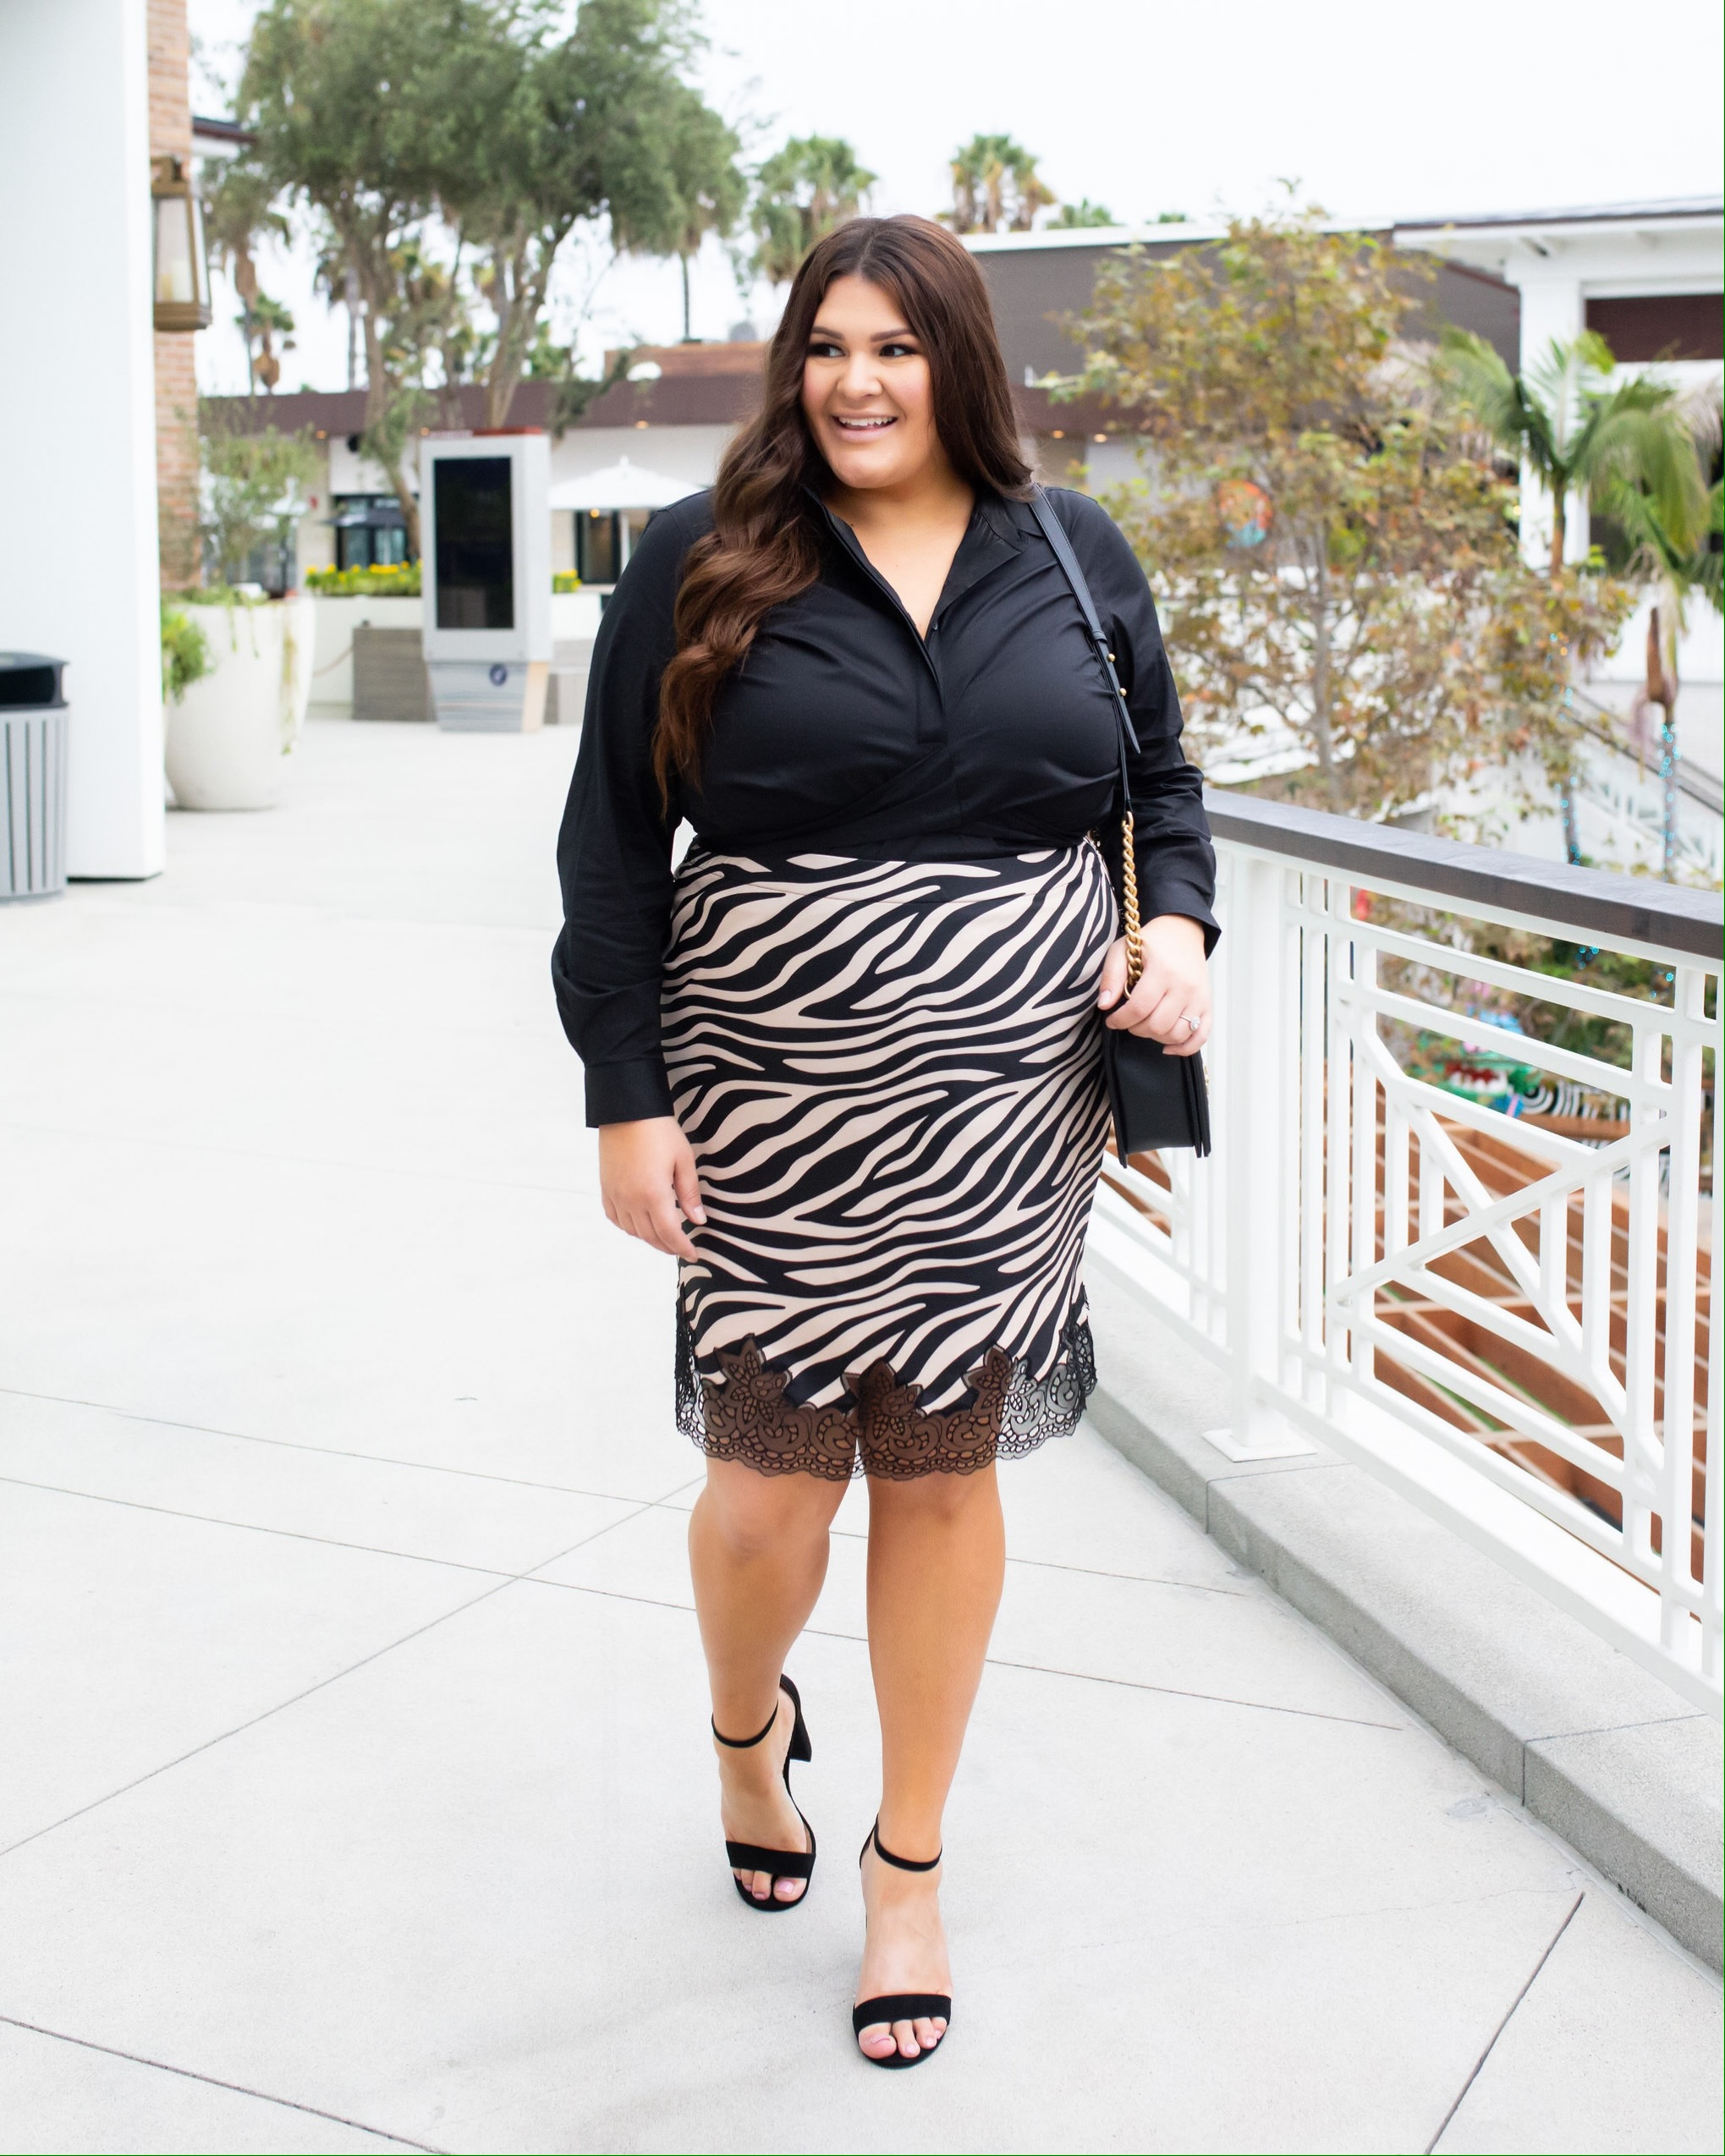 Plus Size Workwear Looks